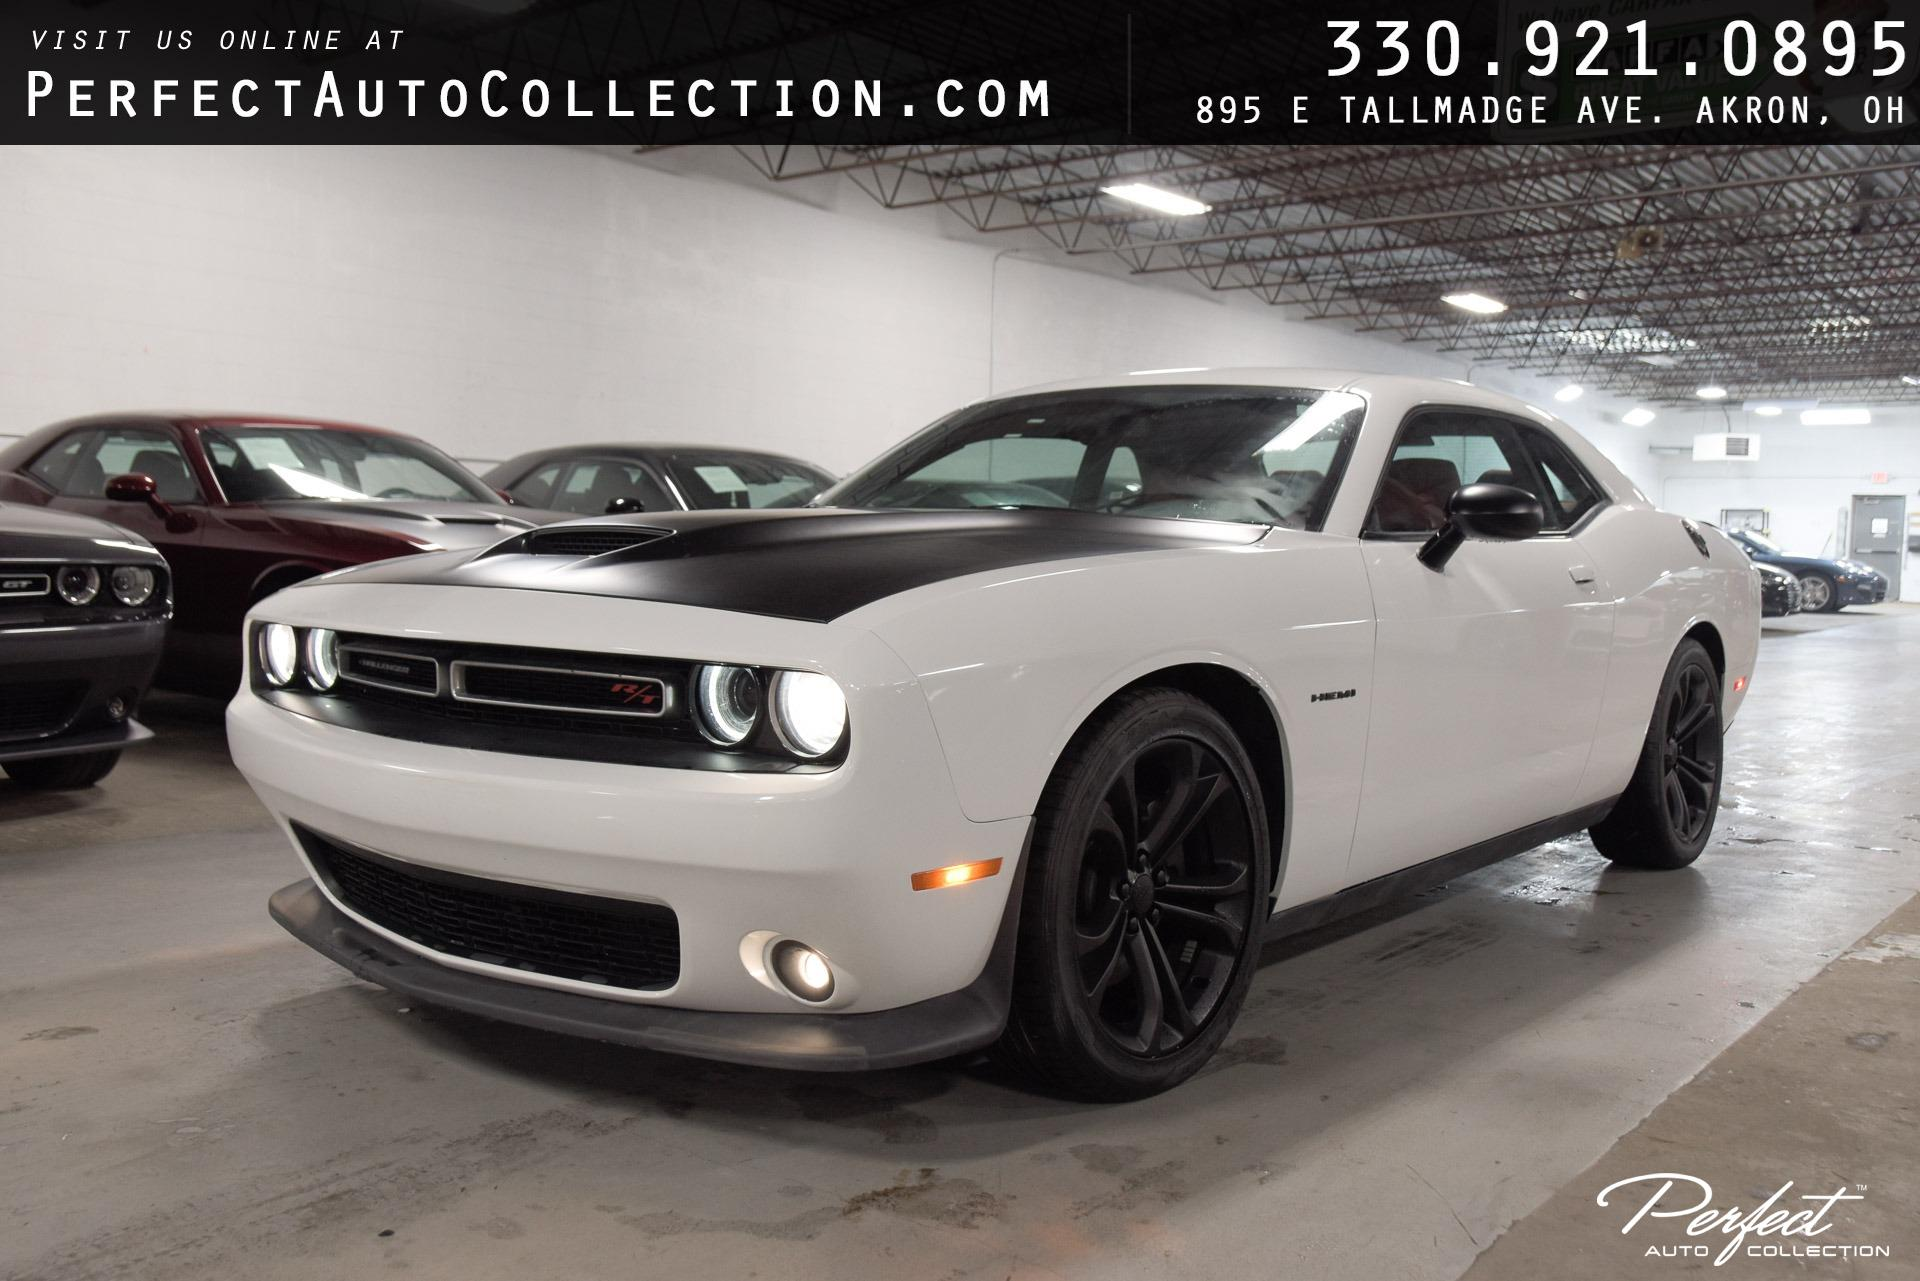 Used 2020 Dodge Challenger R/T for sale $30,995 at Perfect Auto Collection in Akron OH 44310 1